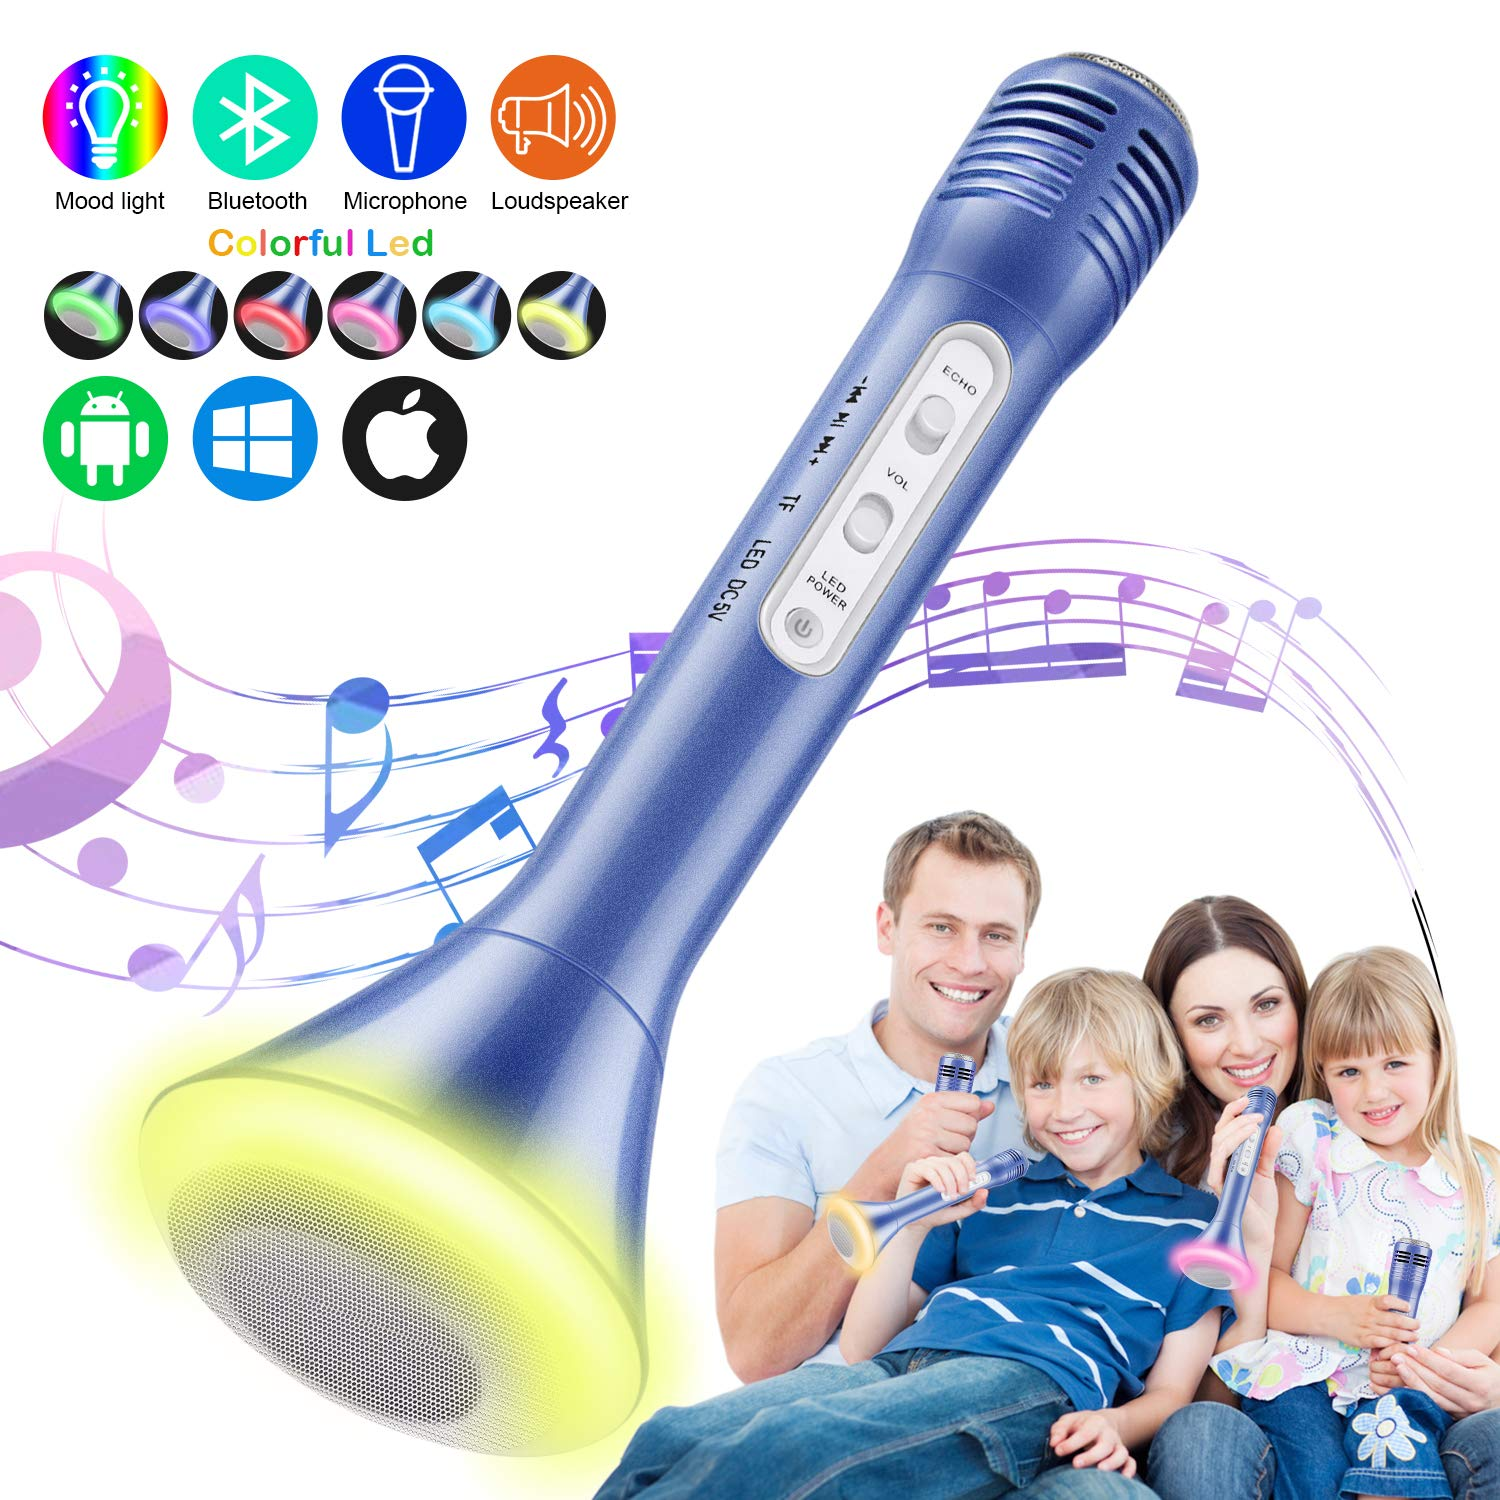 Magicfun Kids Microphone, Karaoke Microphone Bluetooth Wireless Portable Handheld Easter Christmas Birthday Home Party Gifts Toys for 4 5 6 7 8 9 4+ Year Old Kids Girls Boys Mic Speaker Machine(Blue)